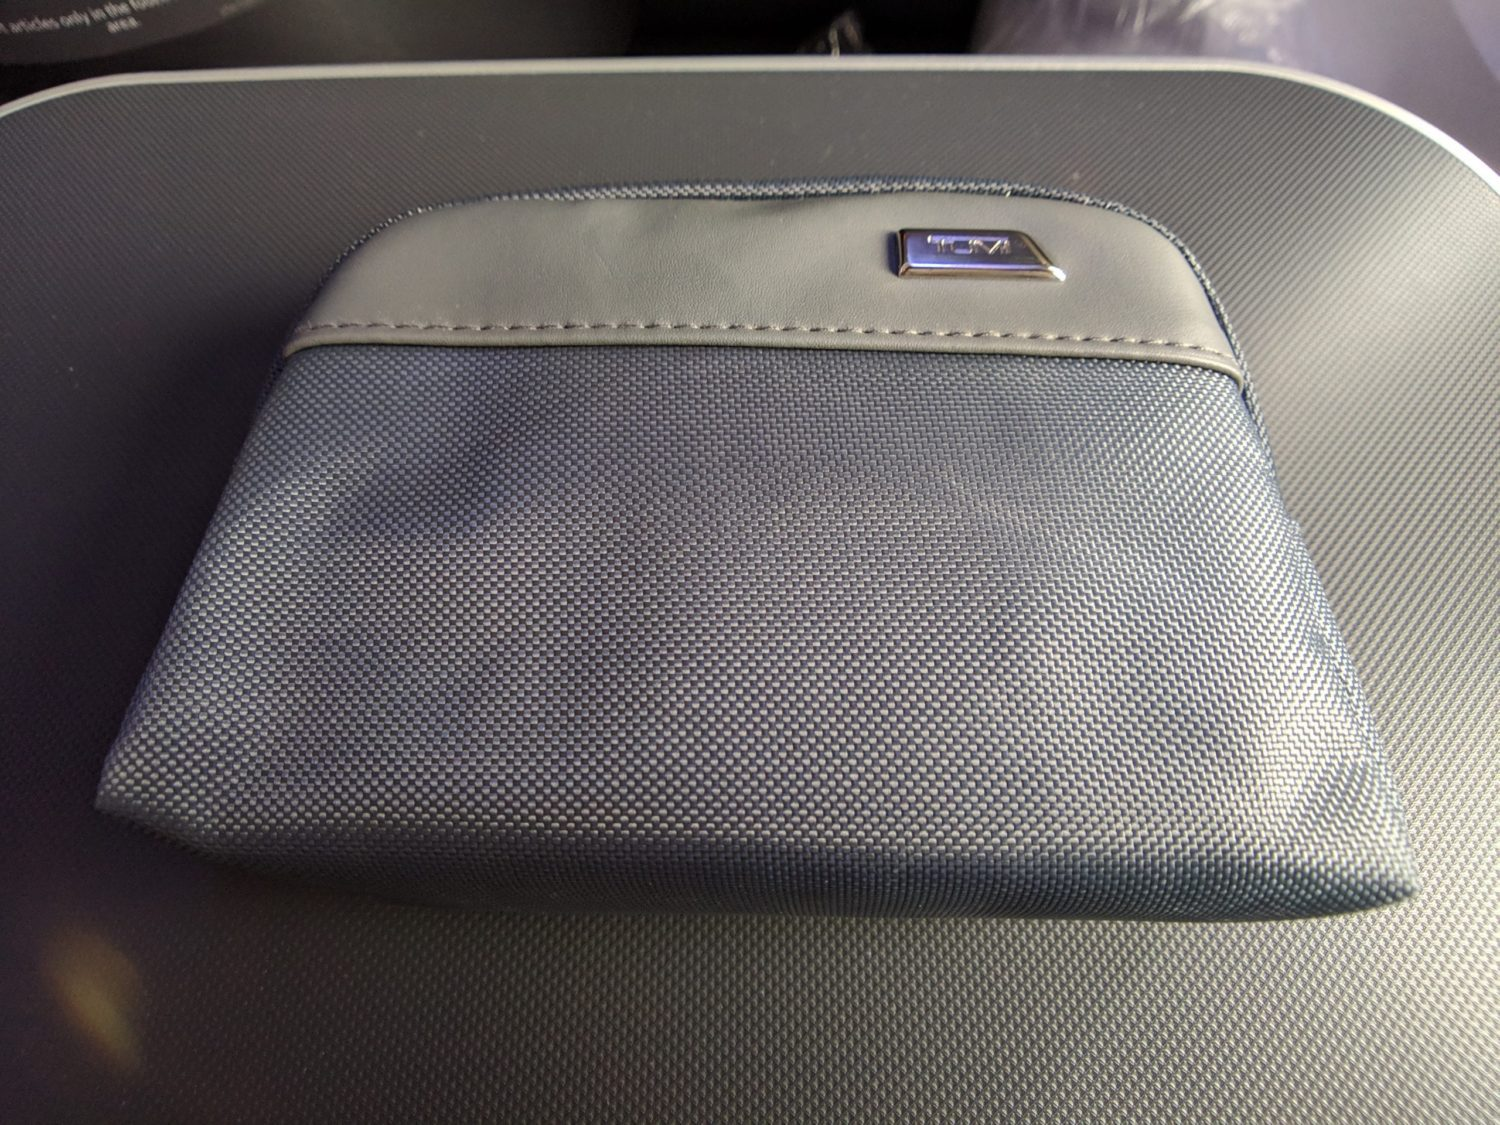 Delta One suites amenity kit